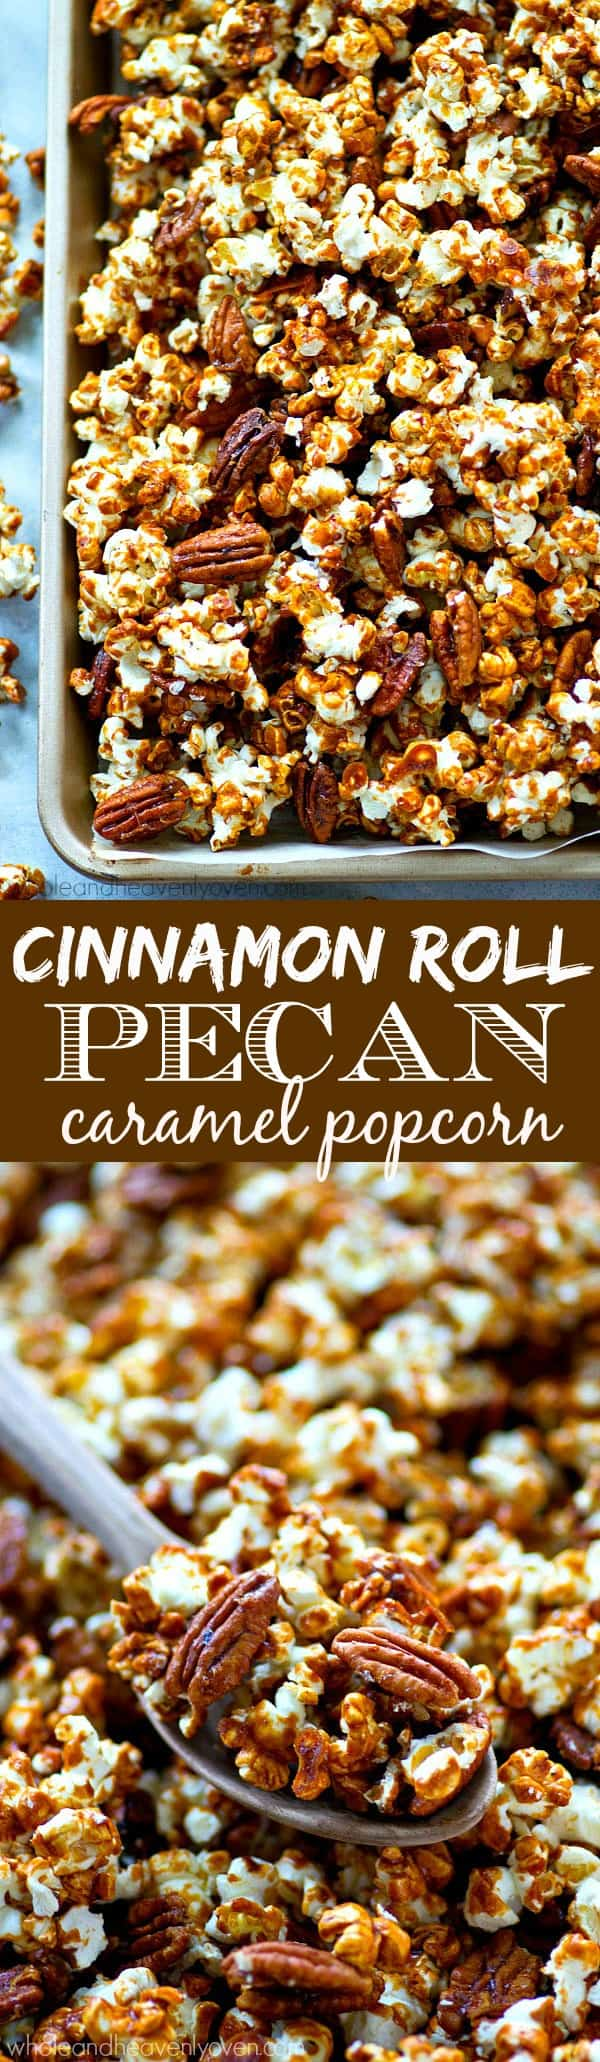 This addicting caramel popcorn is loaded with tons of cinnamon and toasty pecans and makes the absolute best holiday snack! Make a double batch because it's going to disappear that fast.